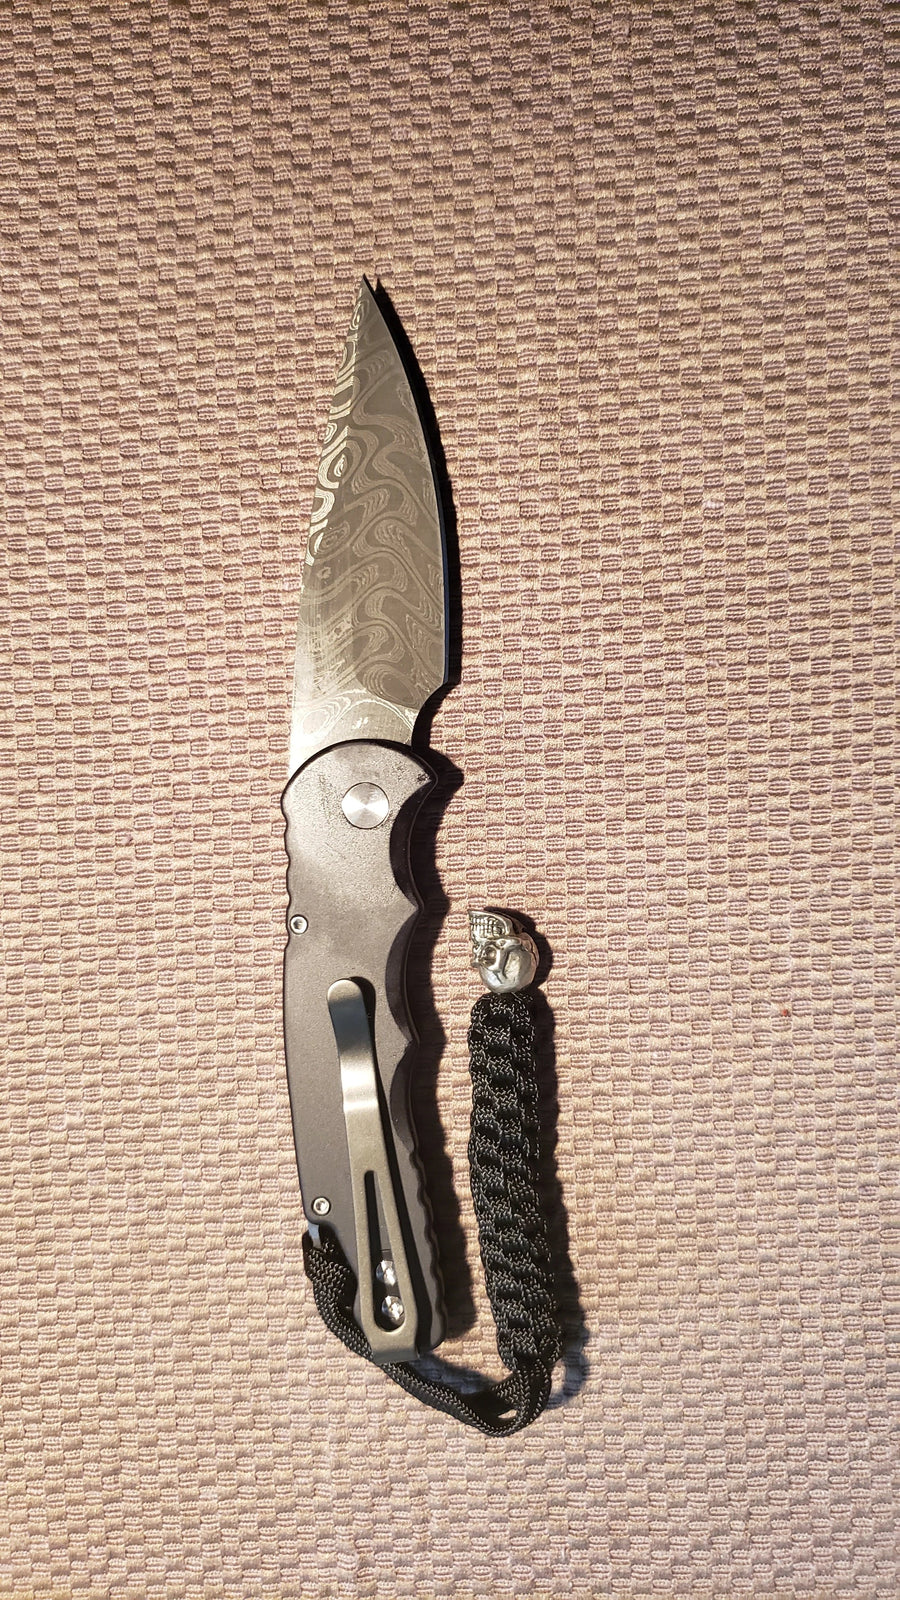 Protech TR-5.7 Skull Damascus Skull Tactical Response Auto Knife